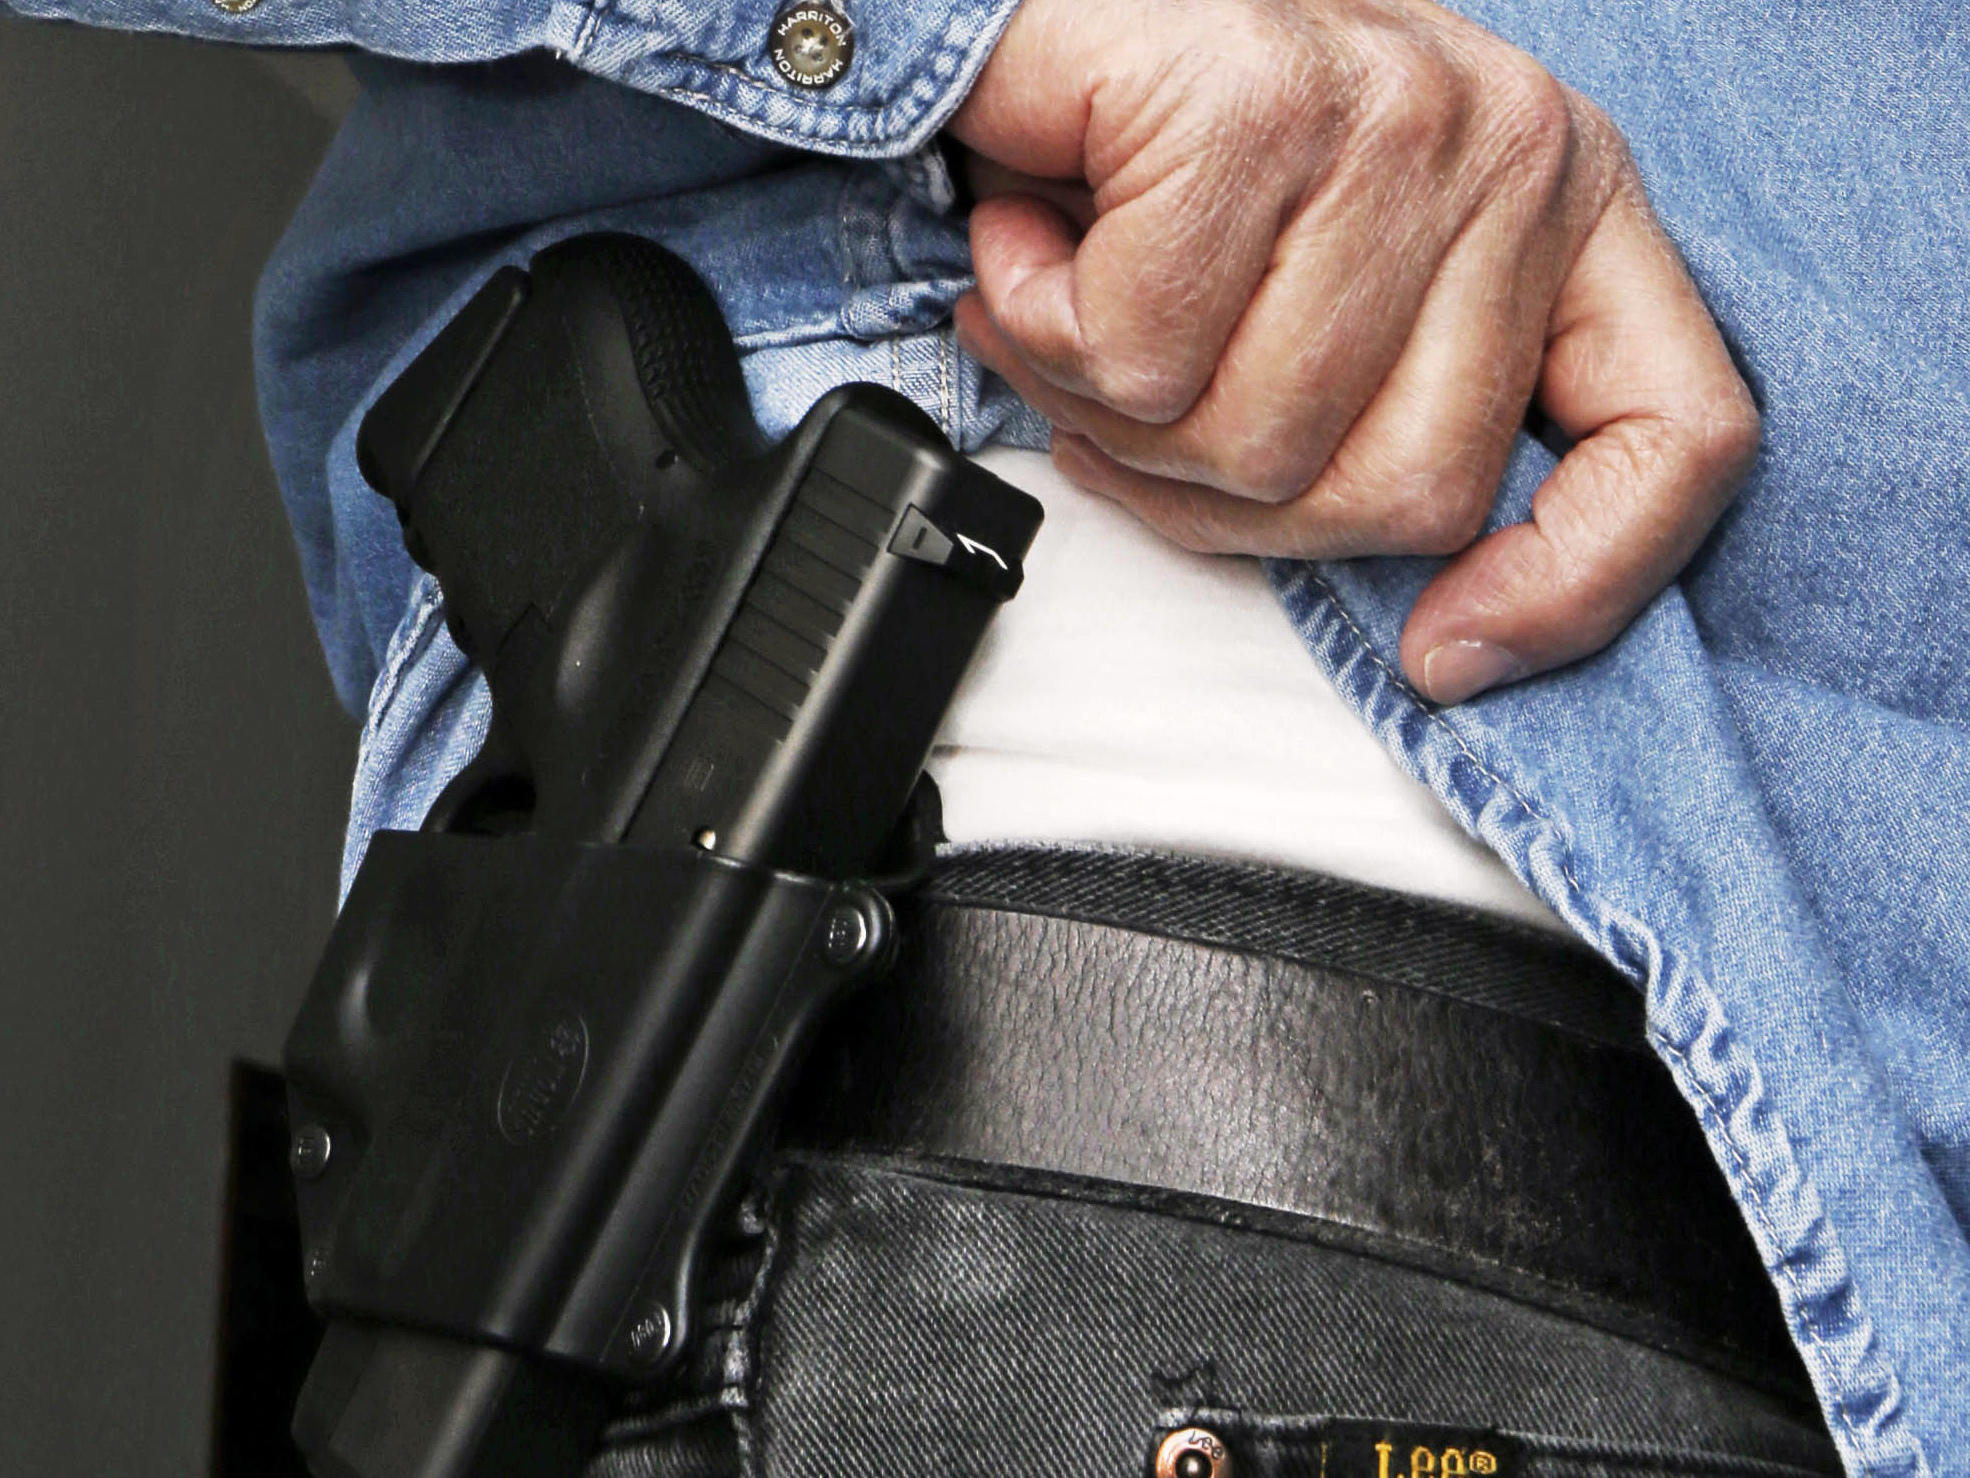 concealed weapons on campus opportunity or